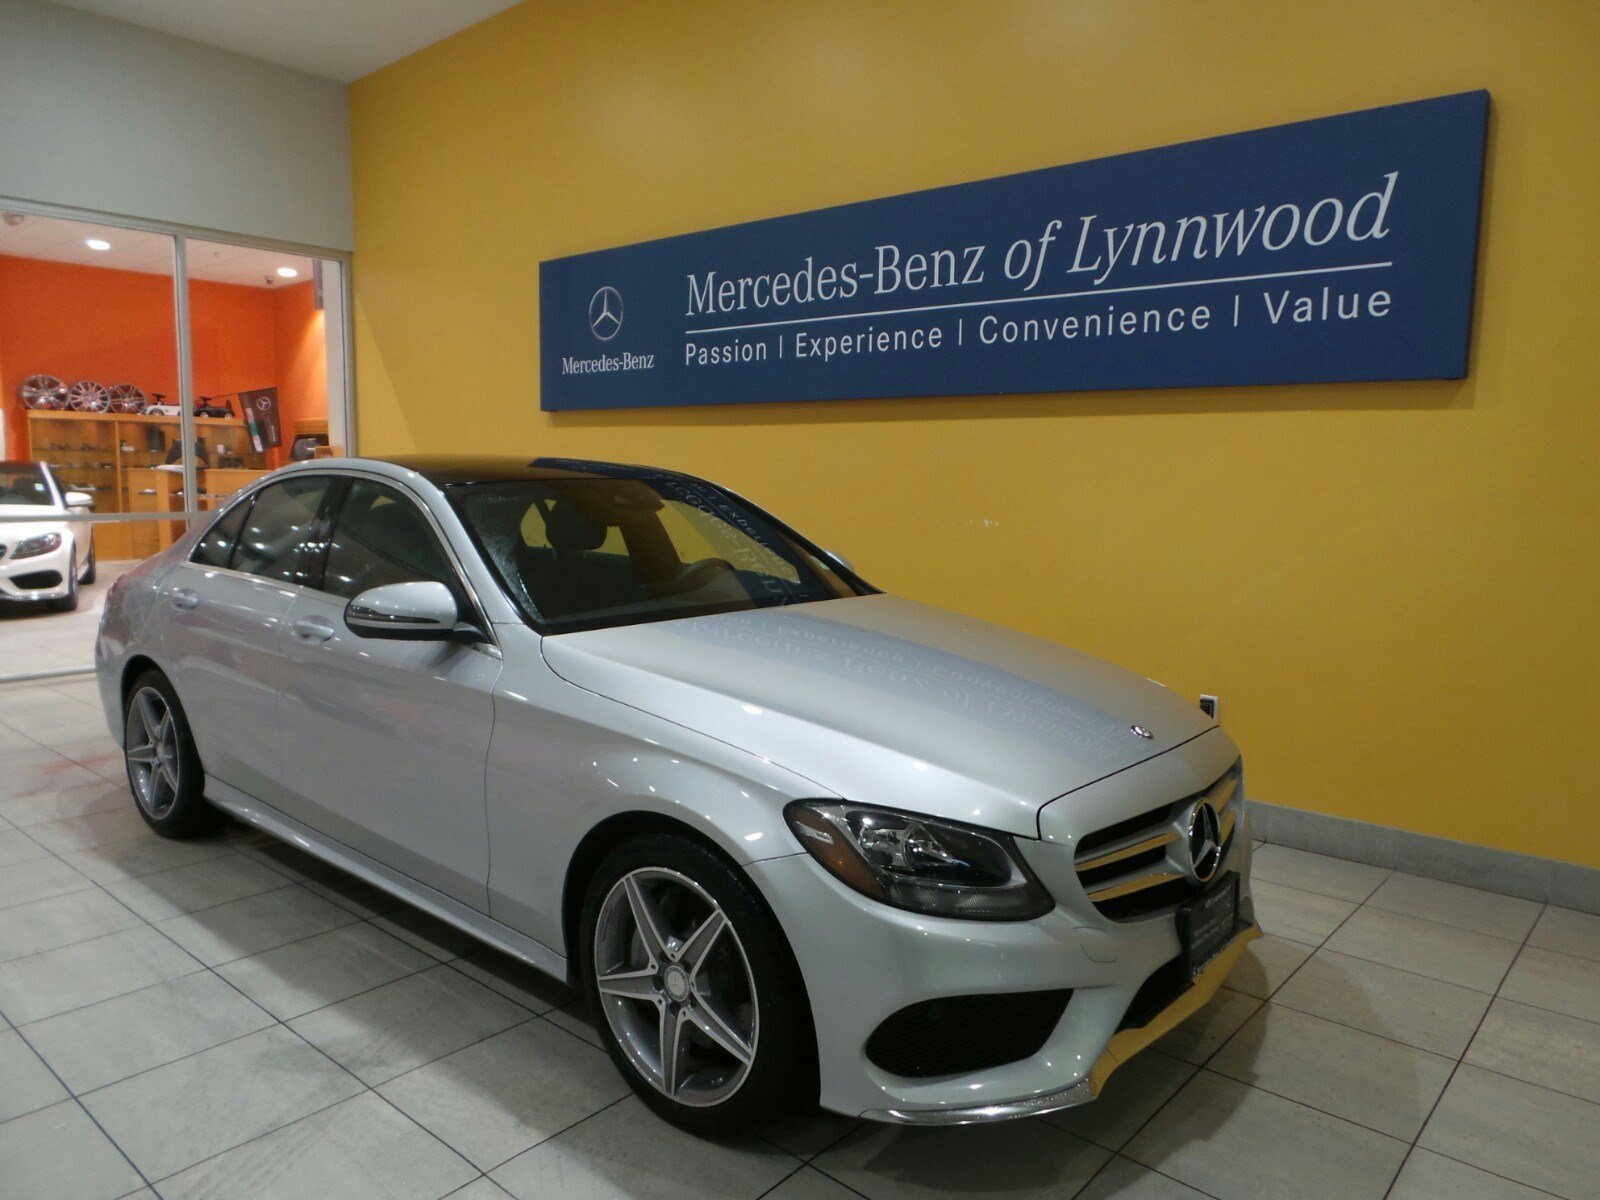 Pre owned 2016 mercedes benz c class c300 sport 4dr car in for Mercedes benz pre owned vehicles